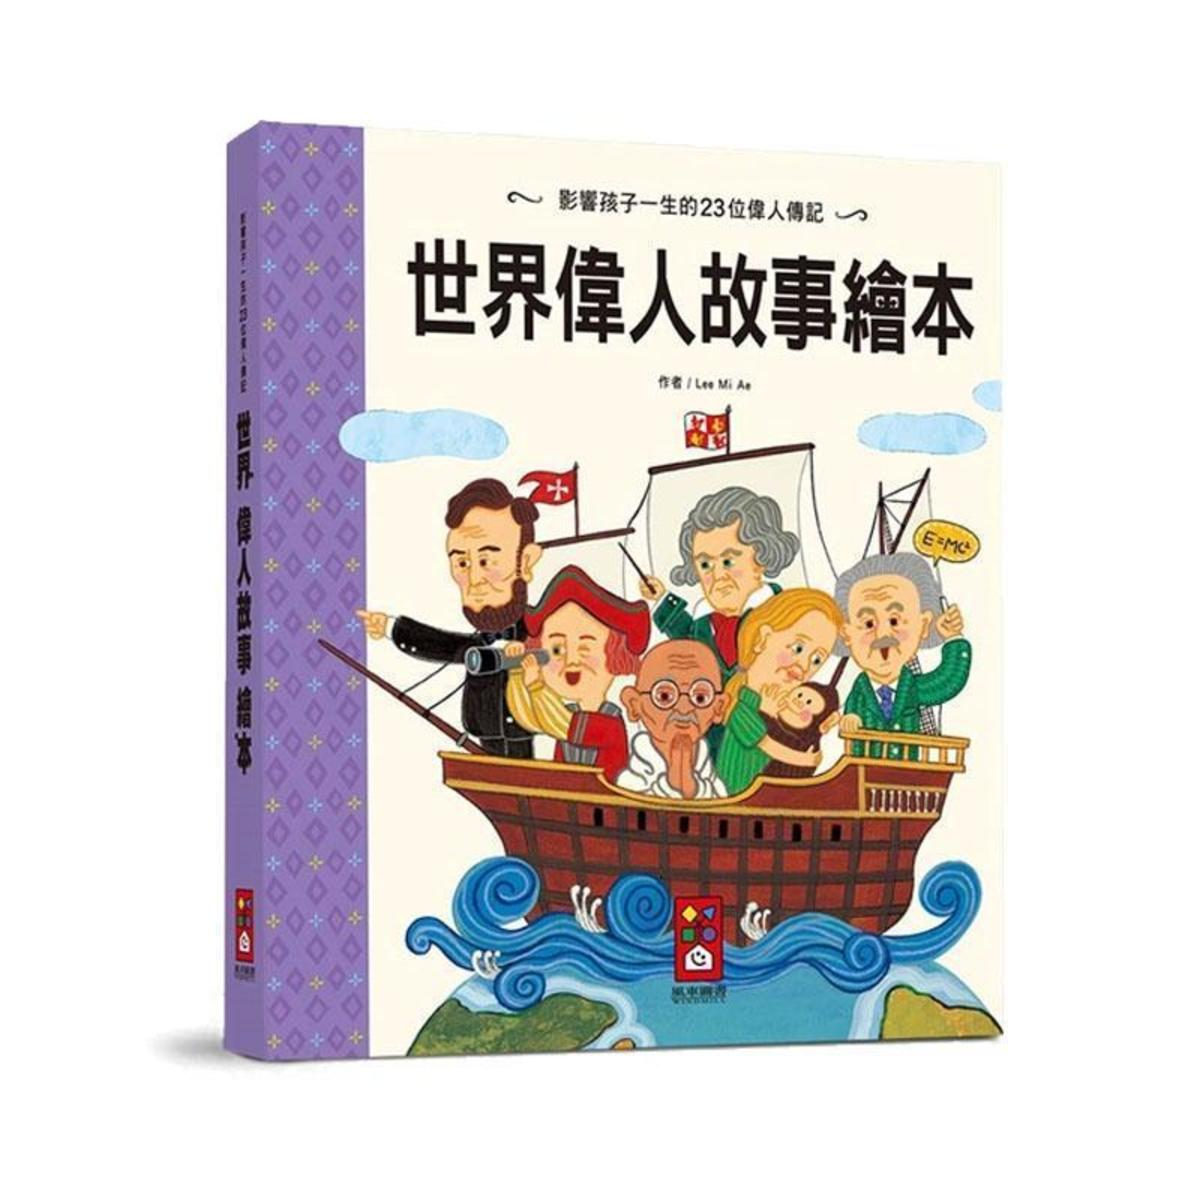 Publishing World Great Story Storybook - World Classic Story Series Taiwan Import